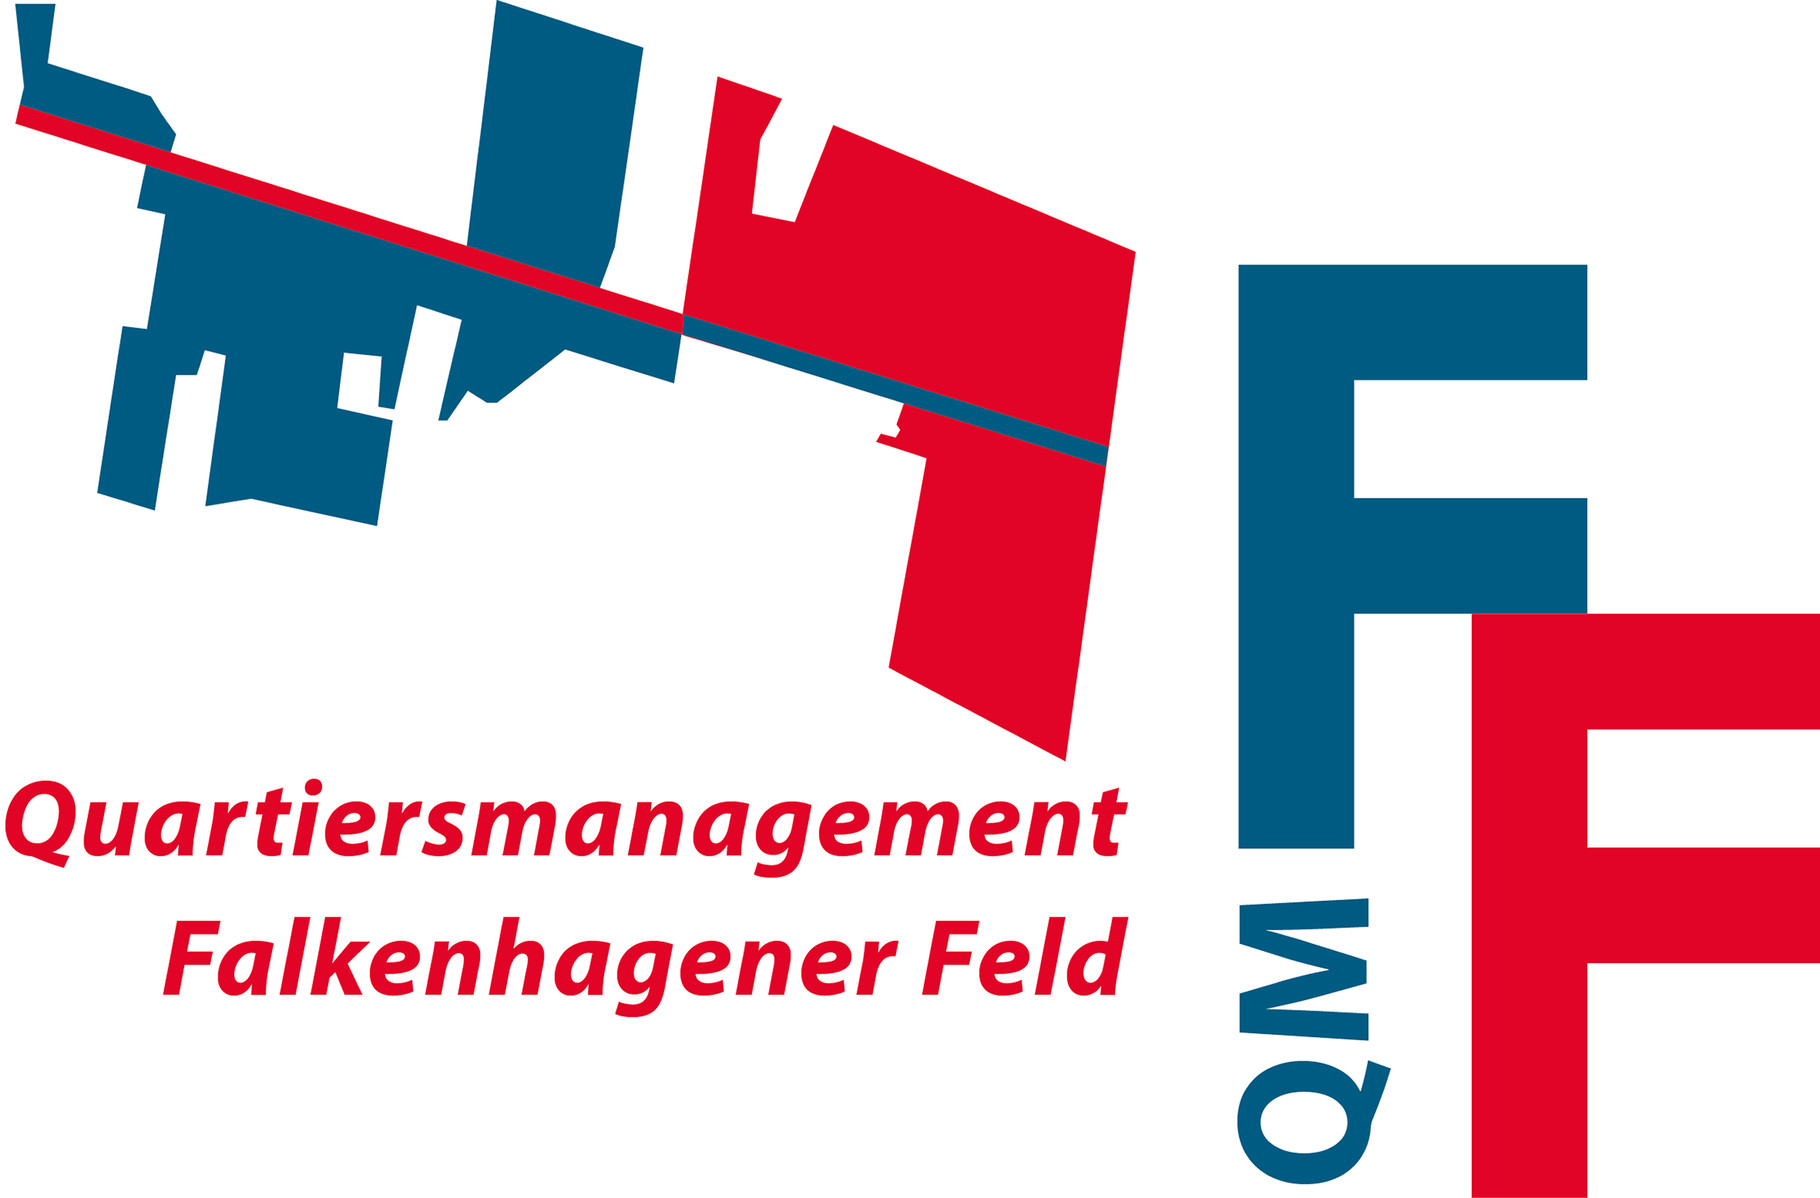 Quartiersmanagement Falkenhagener Feld